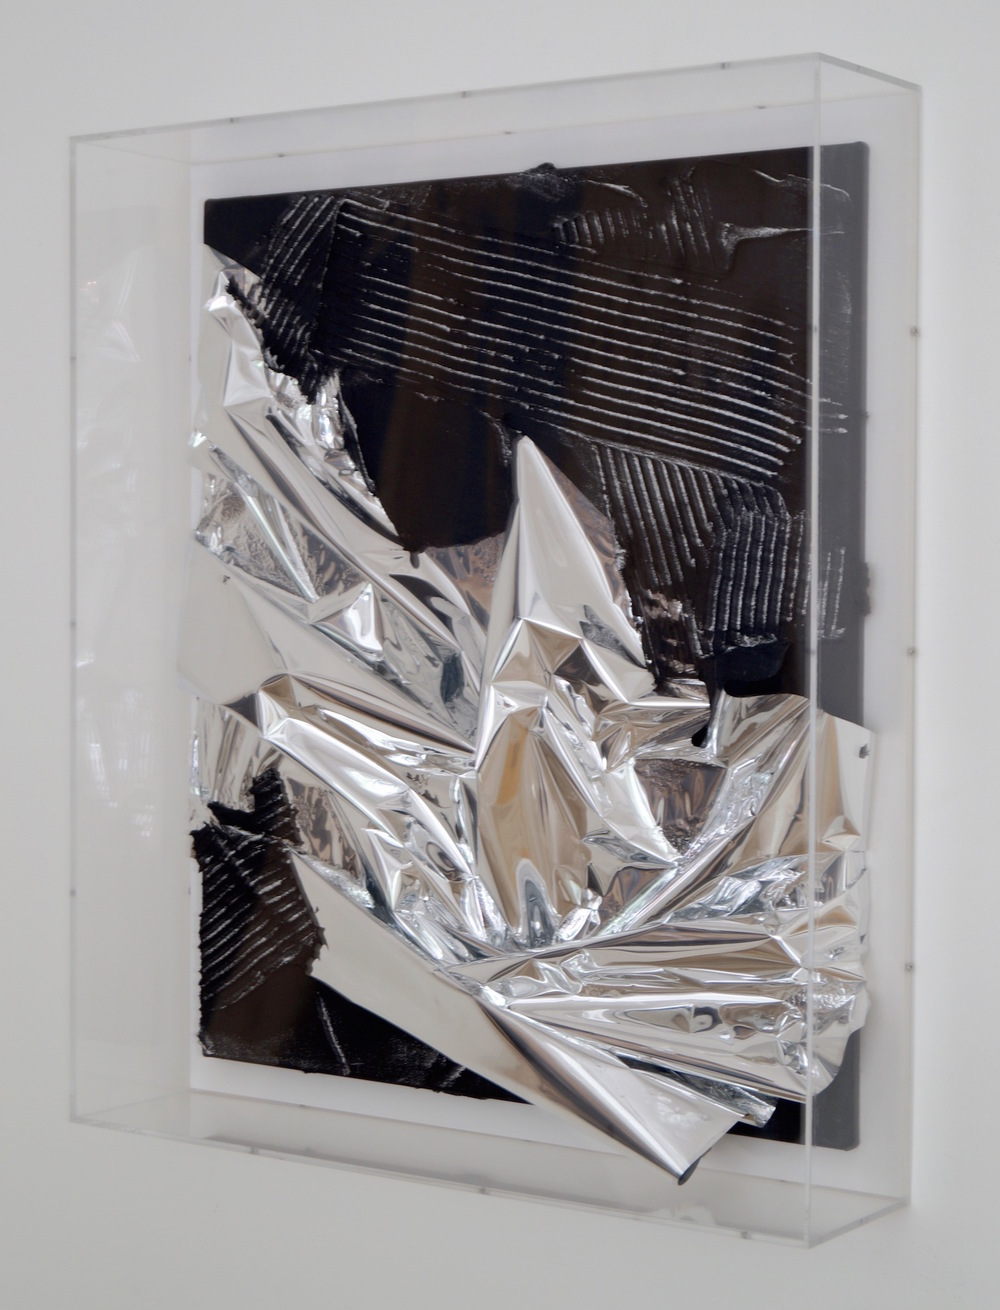 Anselm Reyle Untitled, 2007 mixed media on canvas in acrylic box 74 x 63 x 14 cm | 29 1/4 x 24 3/4 x 5 1/2 in